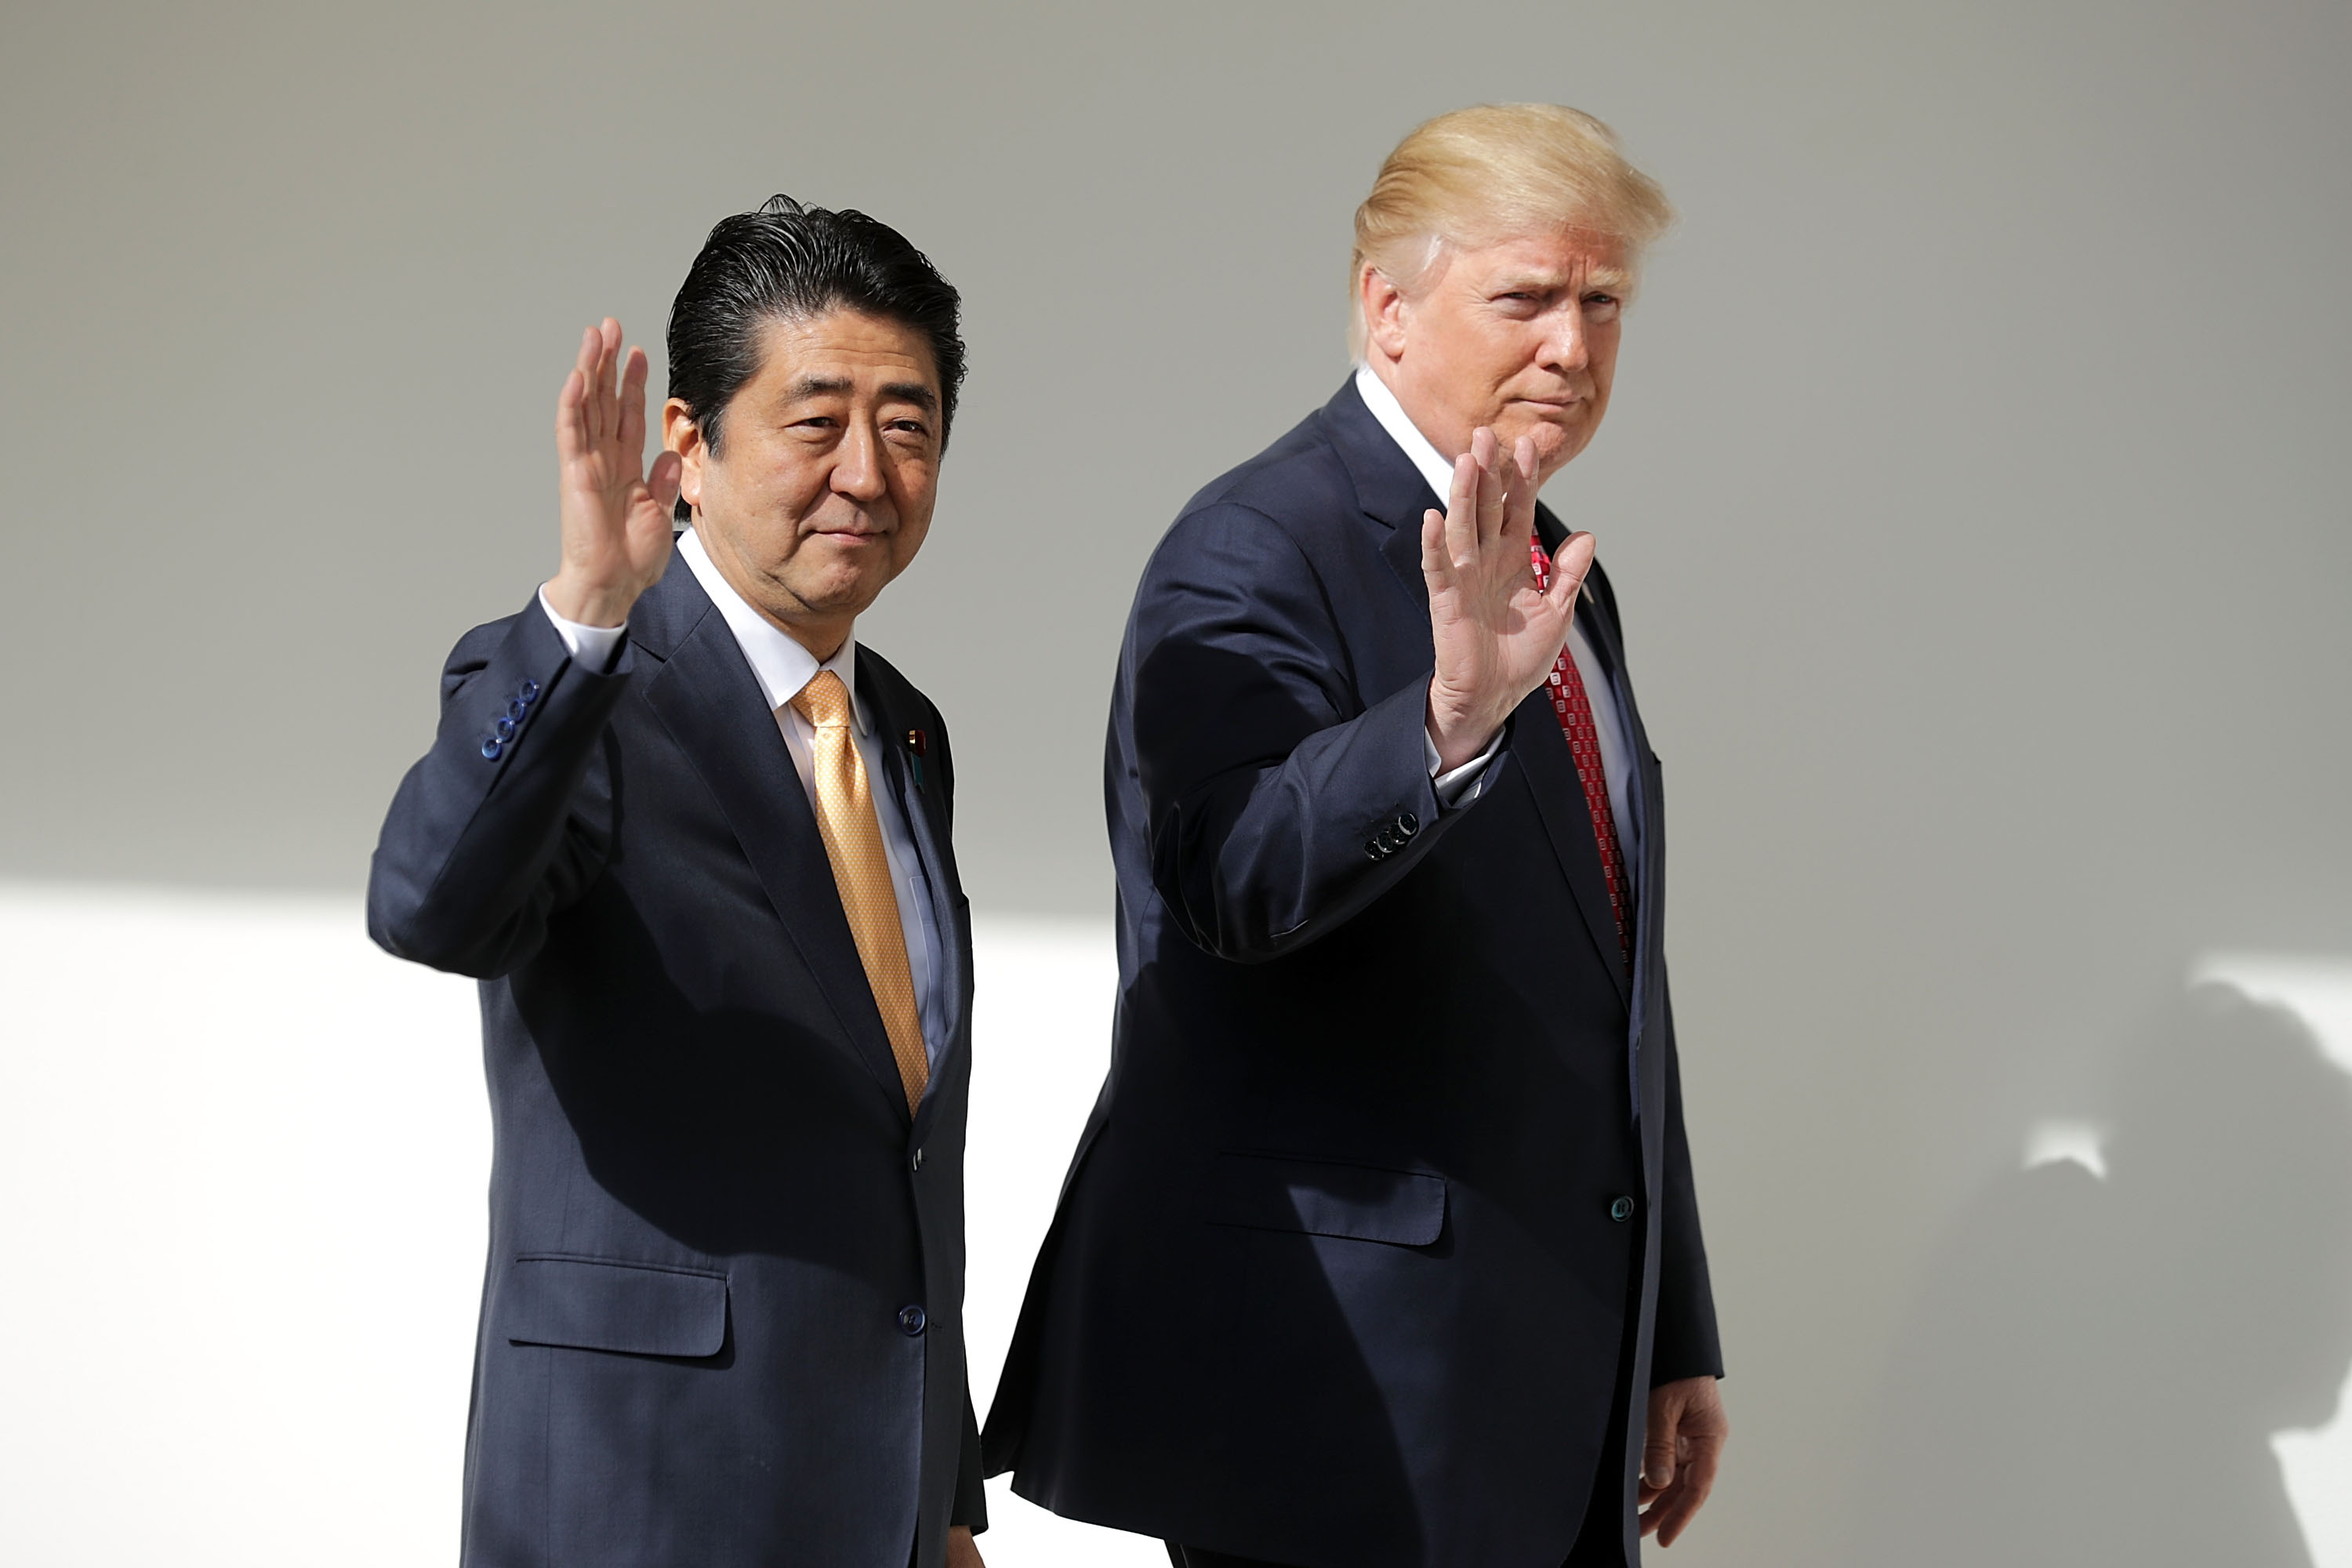 U.S. President Donald Trump and Japan Prime Minister Shinzo Abe walk together to their joint press conference in the East Room at the White House on Feb. 10, 2017 in Washington, D.C.